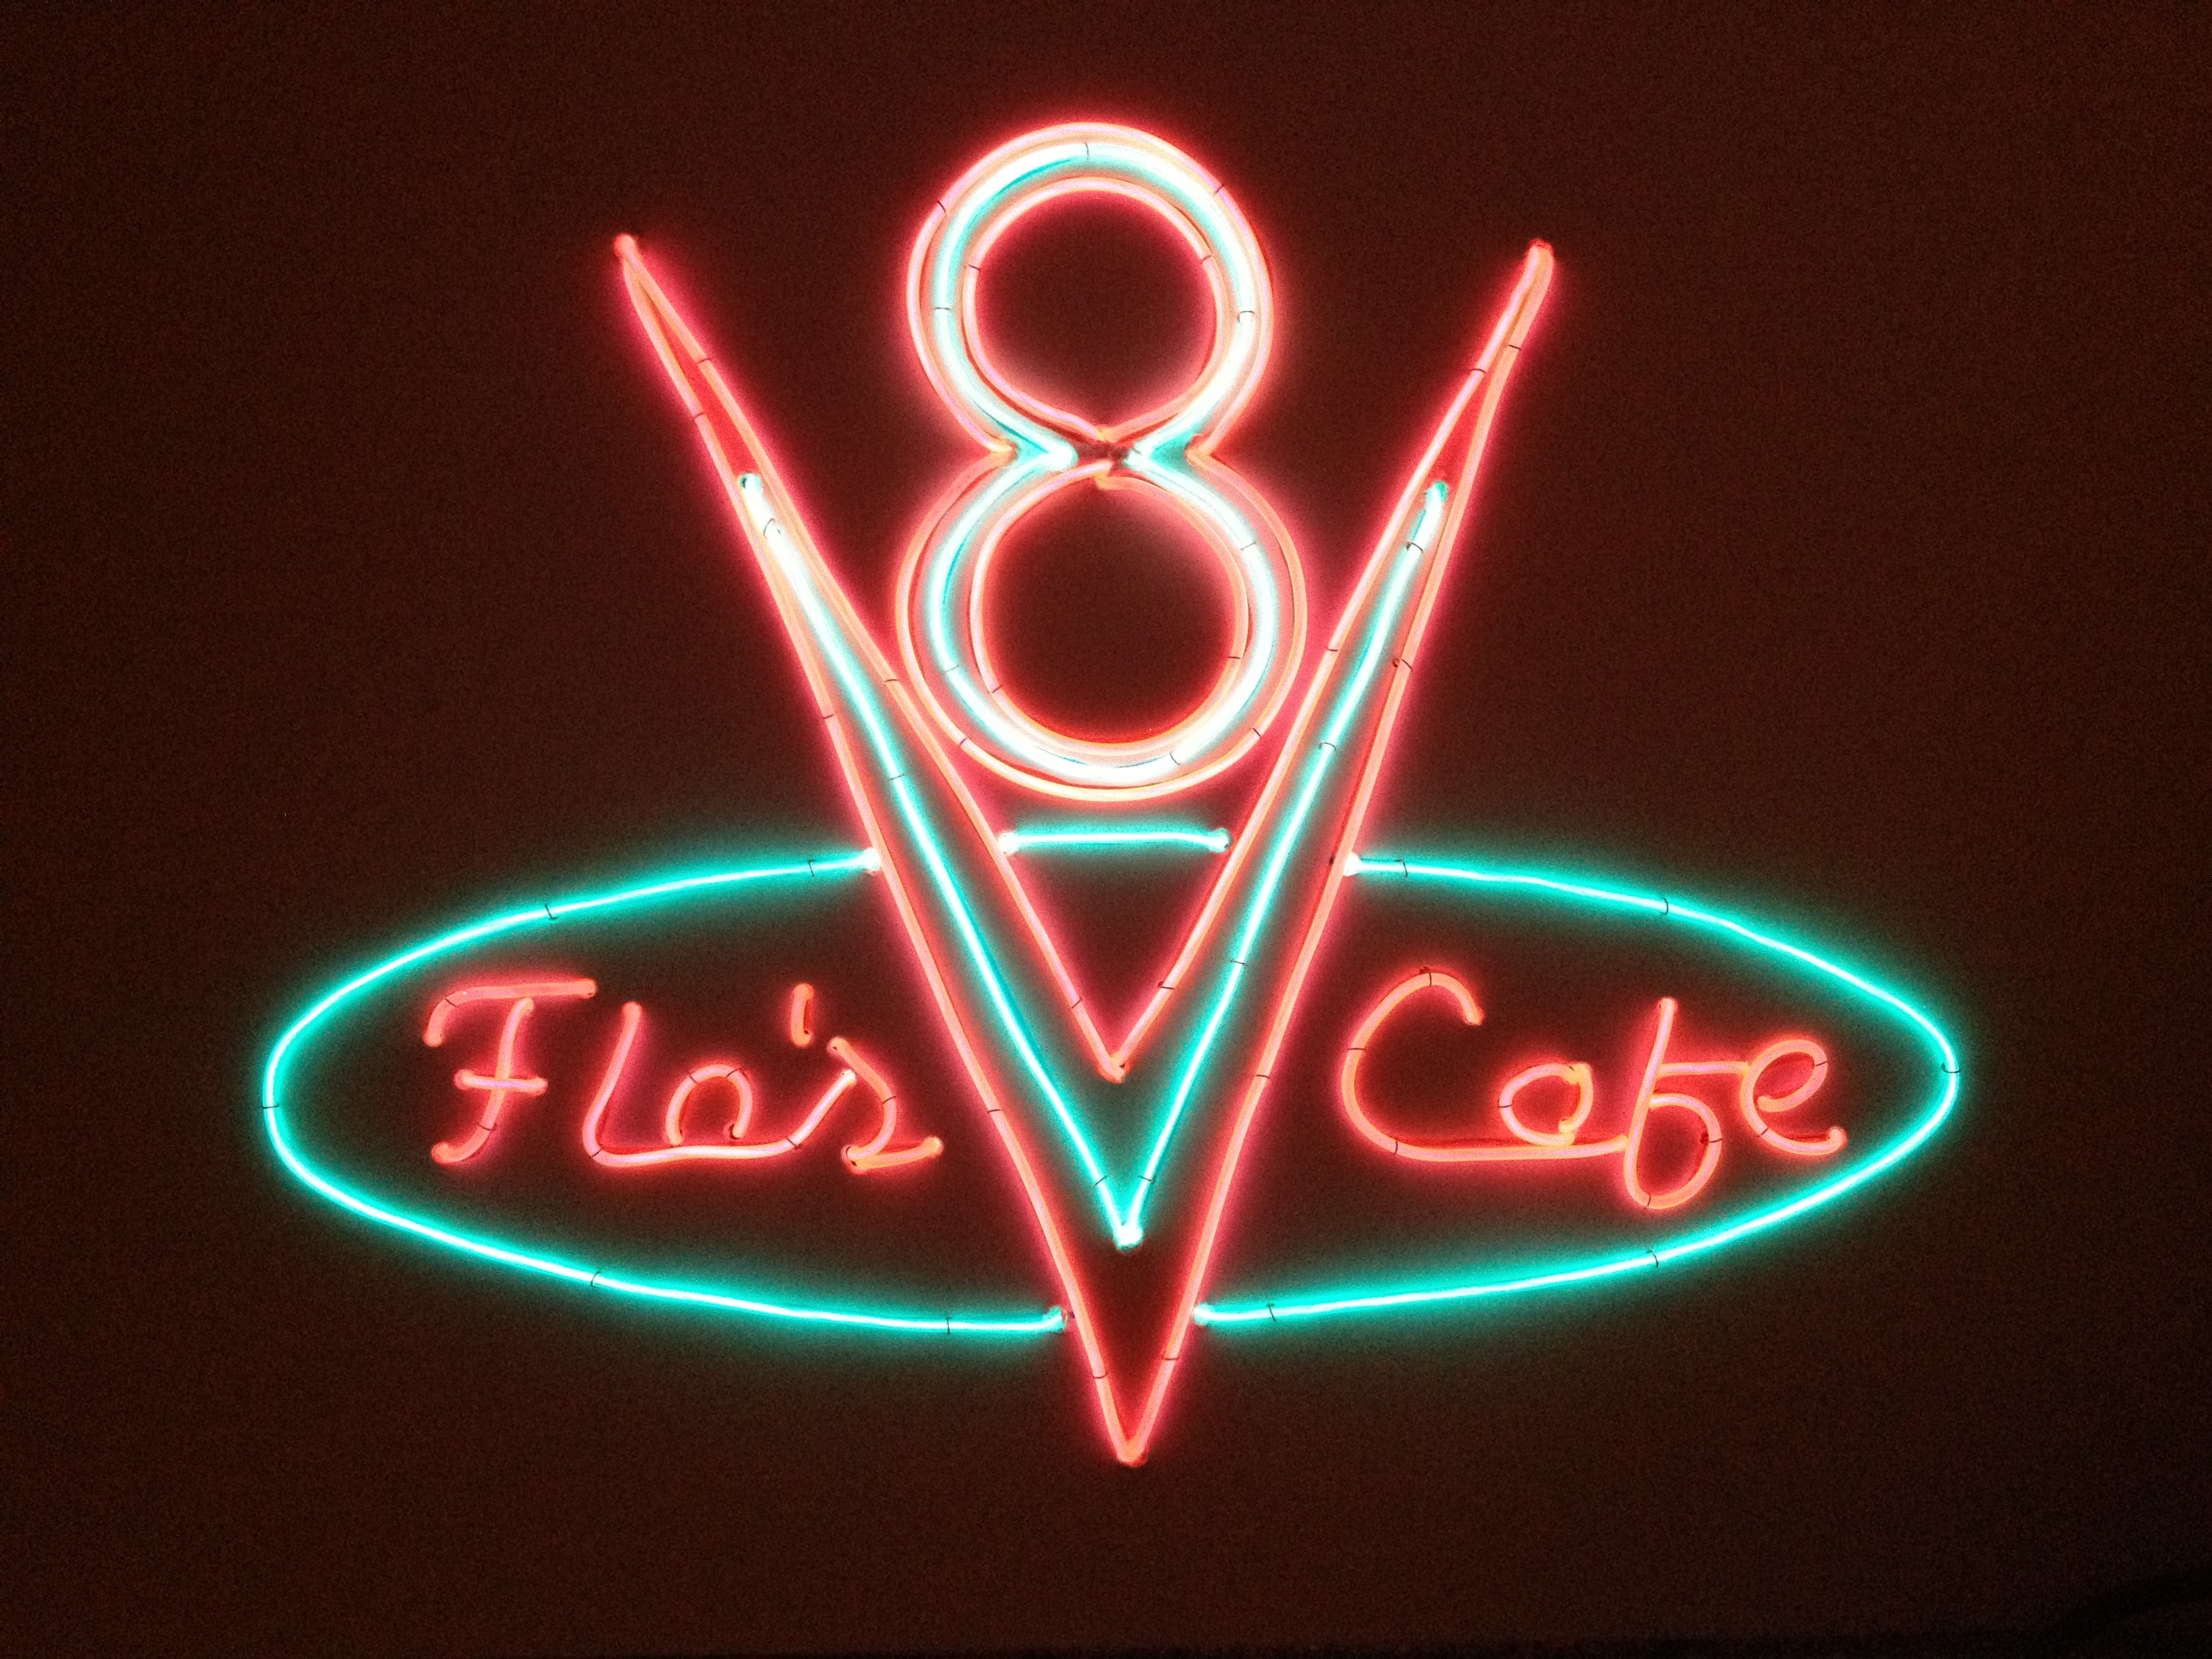 Flo's V8 Cafe sign